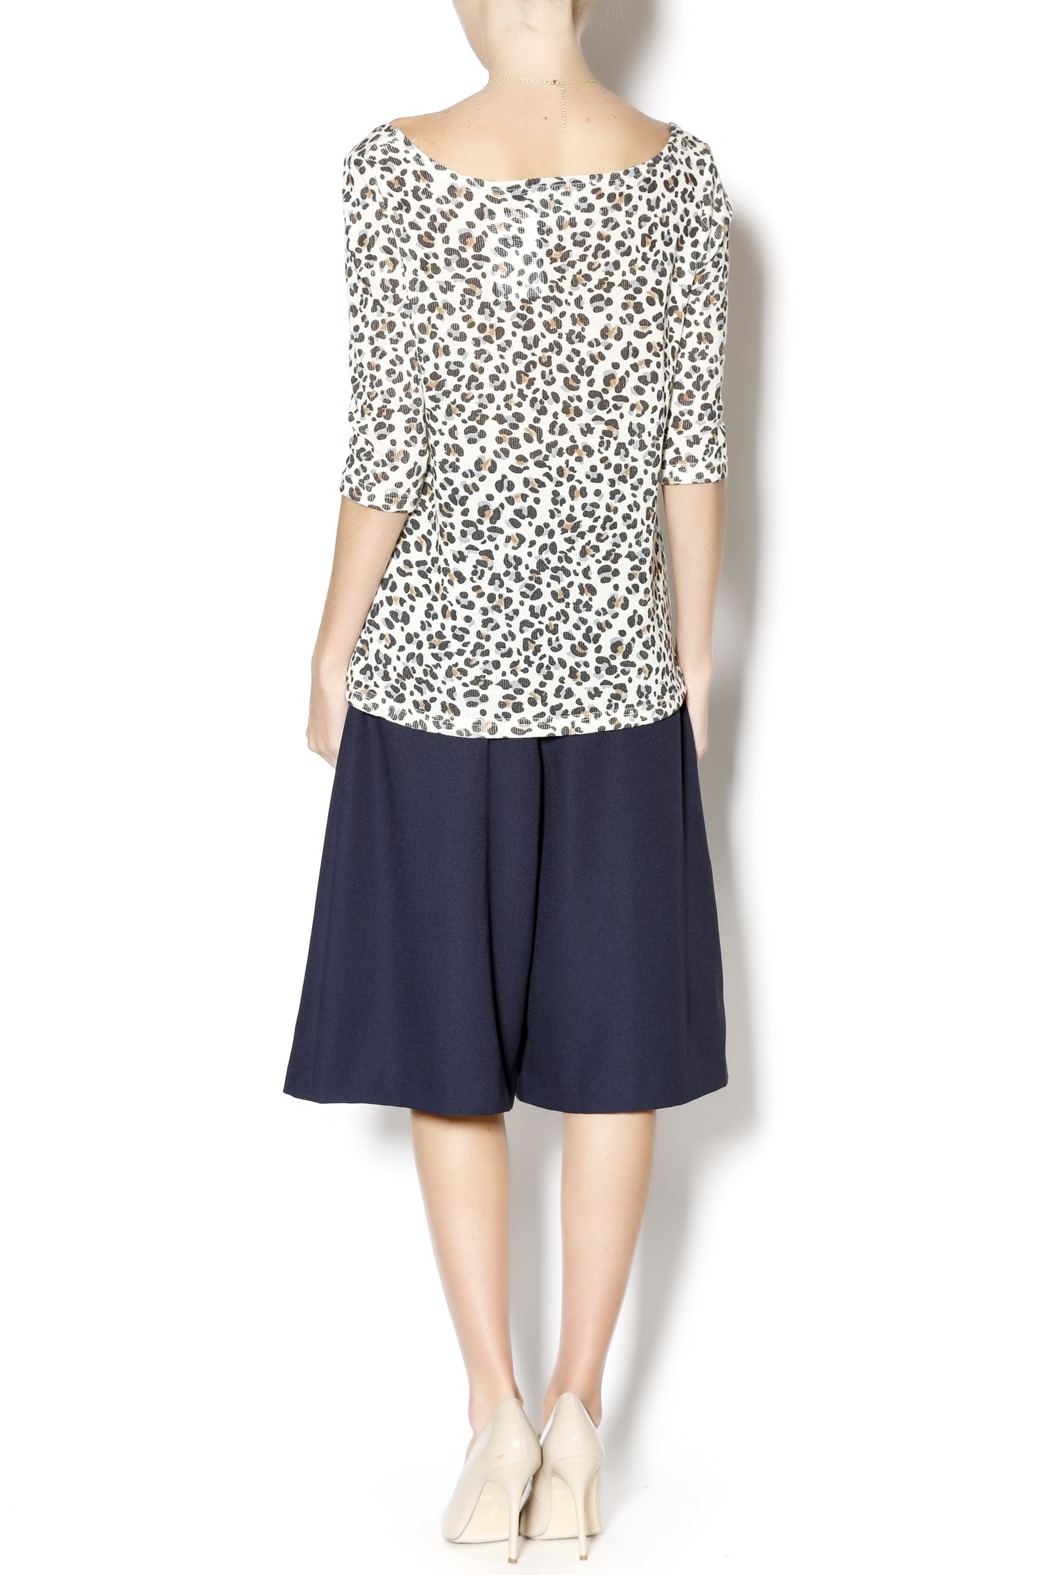 MINKPINK Cool Cat Tunic Tee - Side Cropped Image